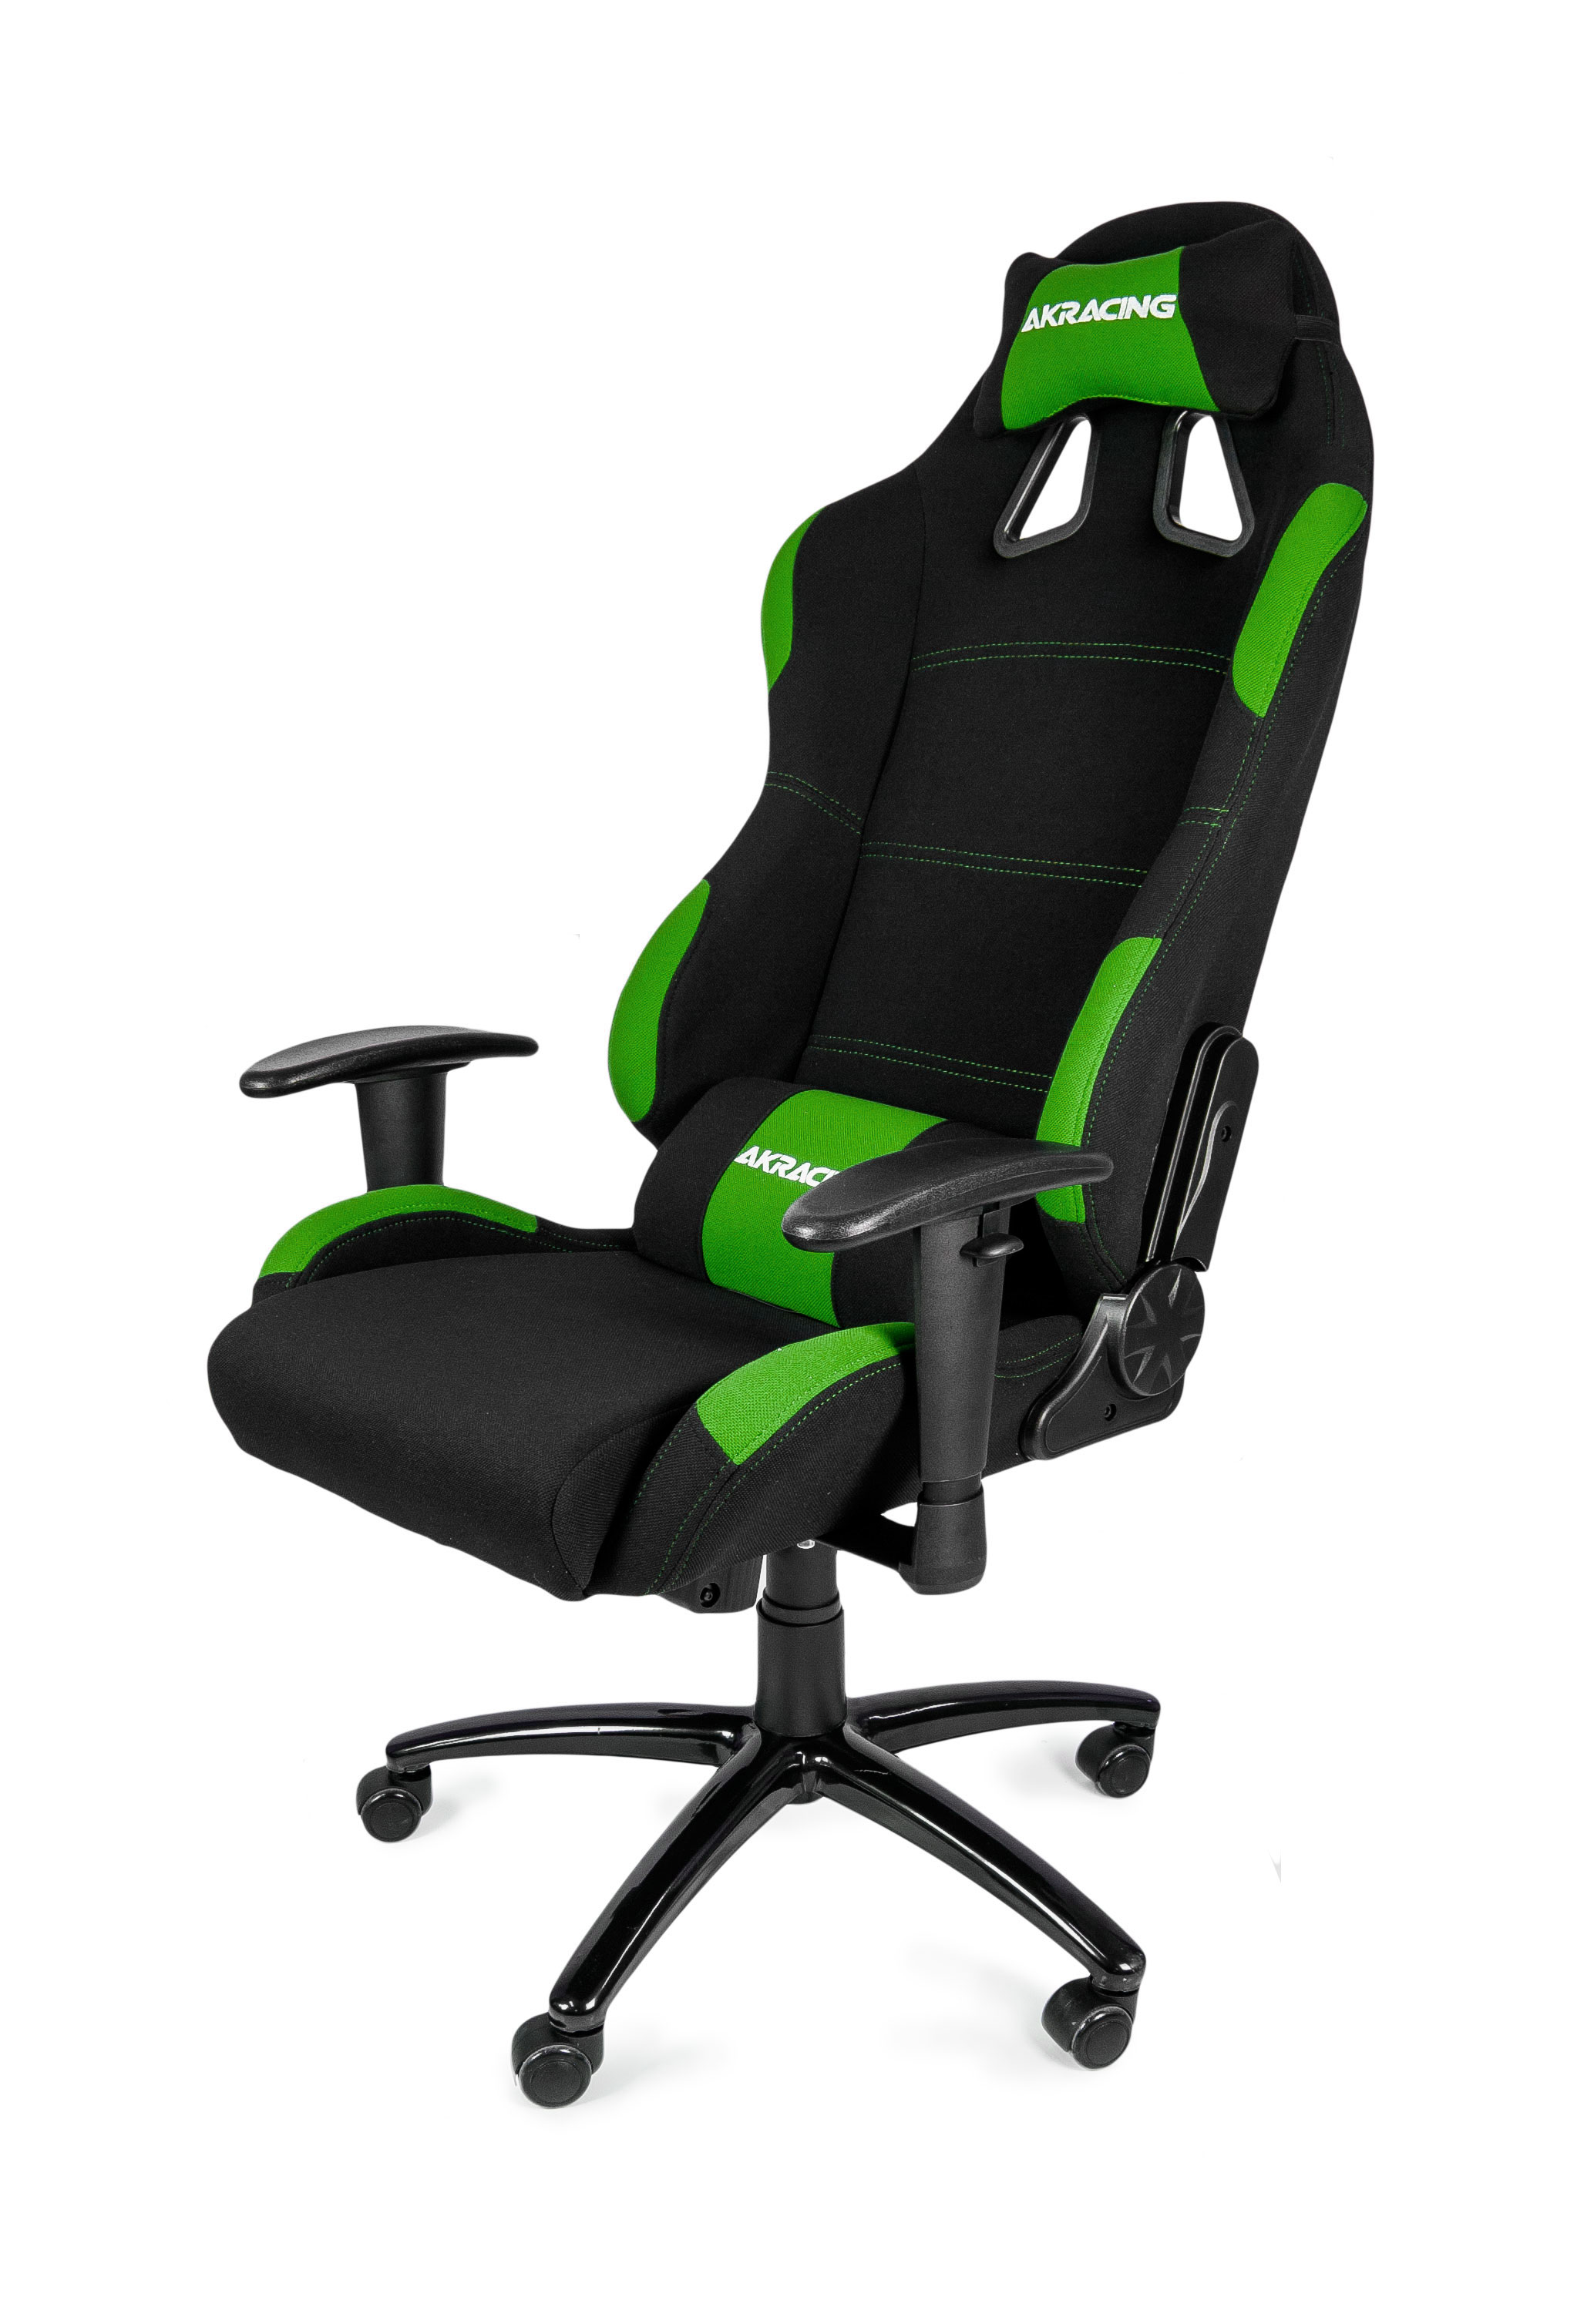 gamer computer chair baby bouncy akracing gaming black green ak k7012 bg